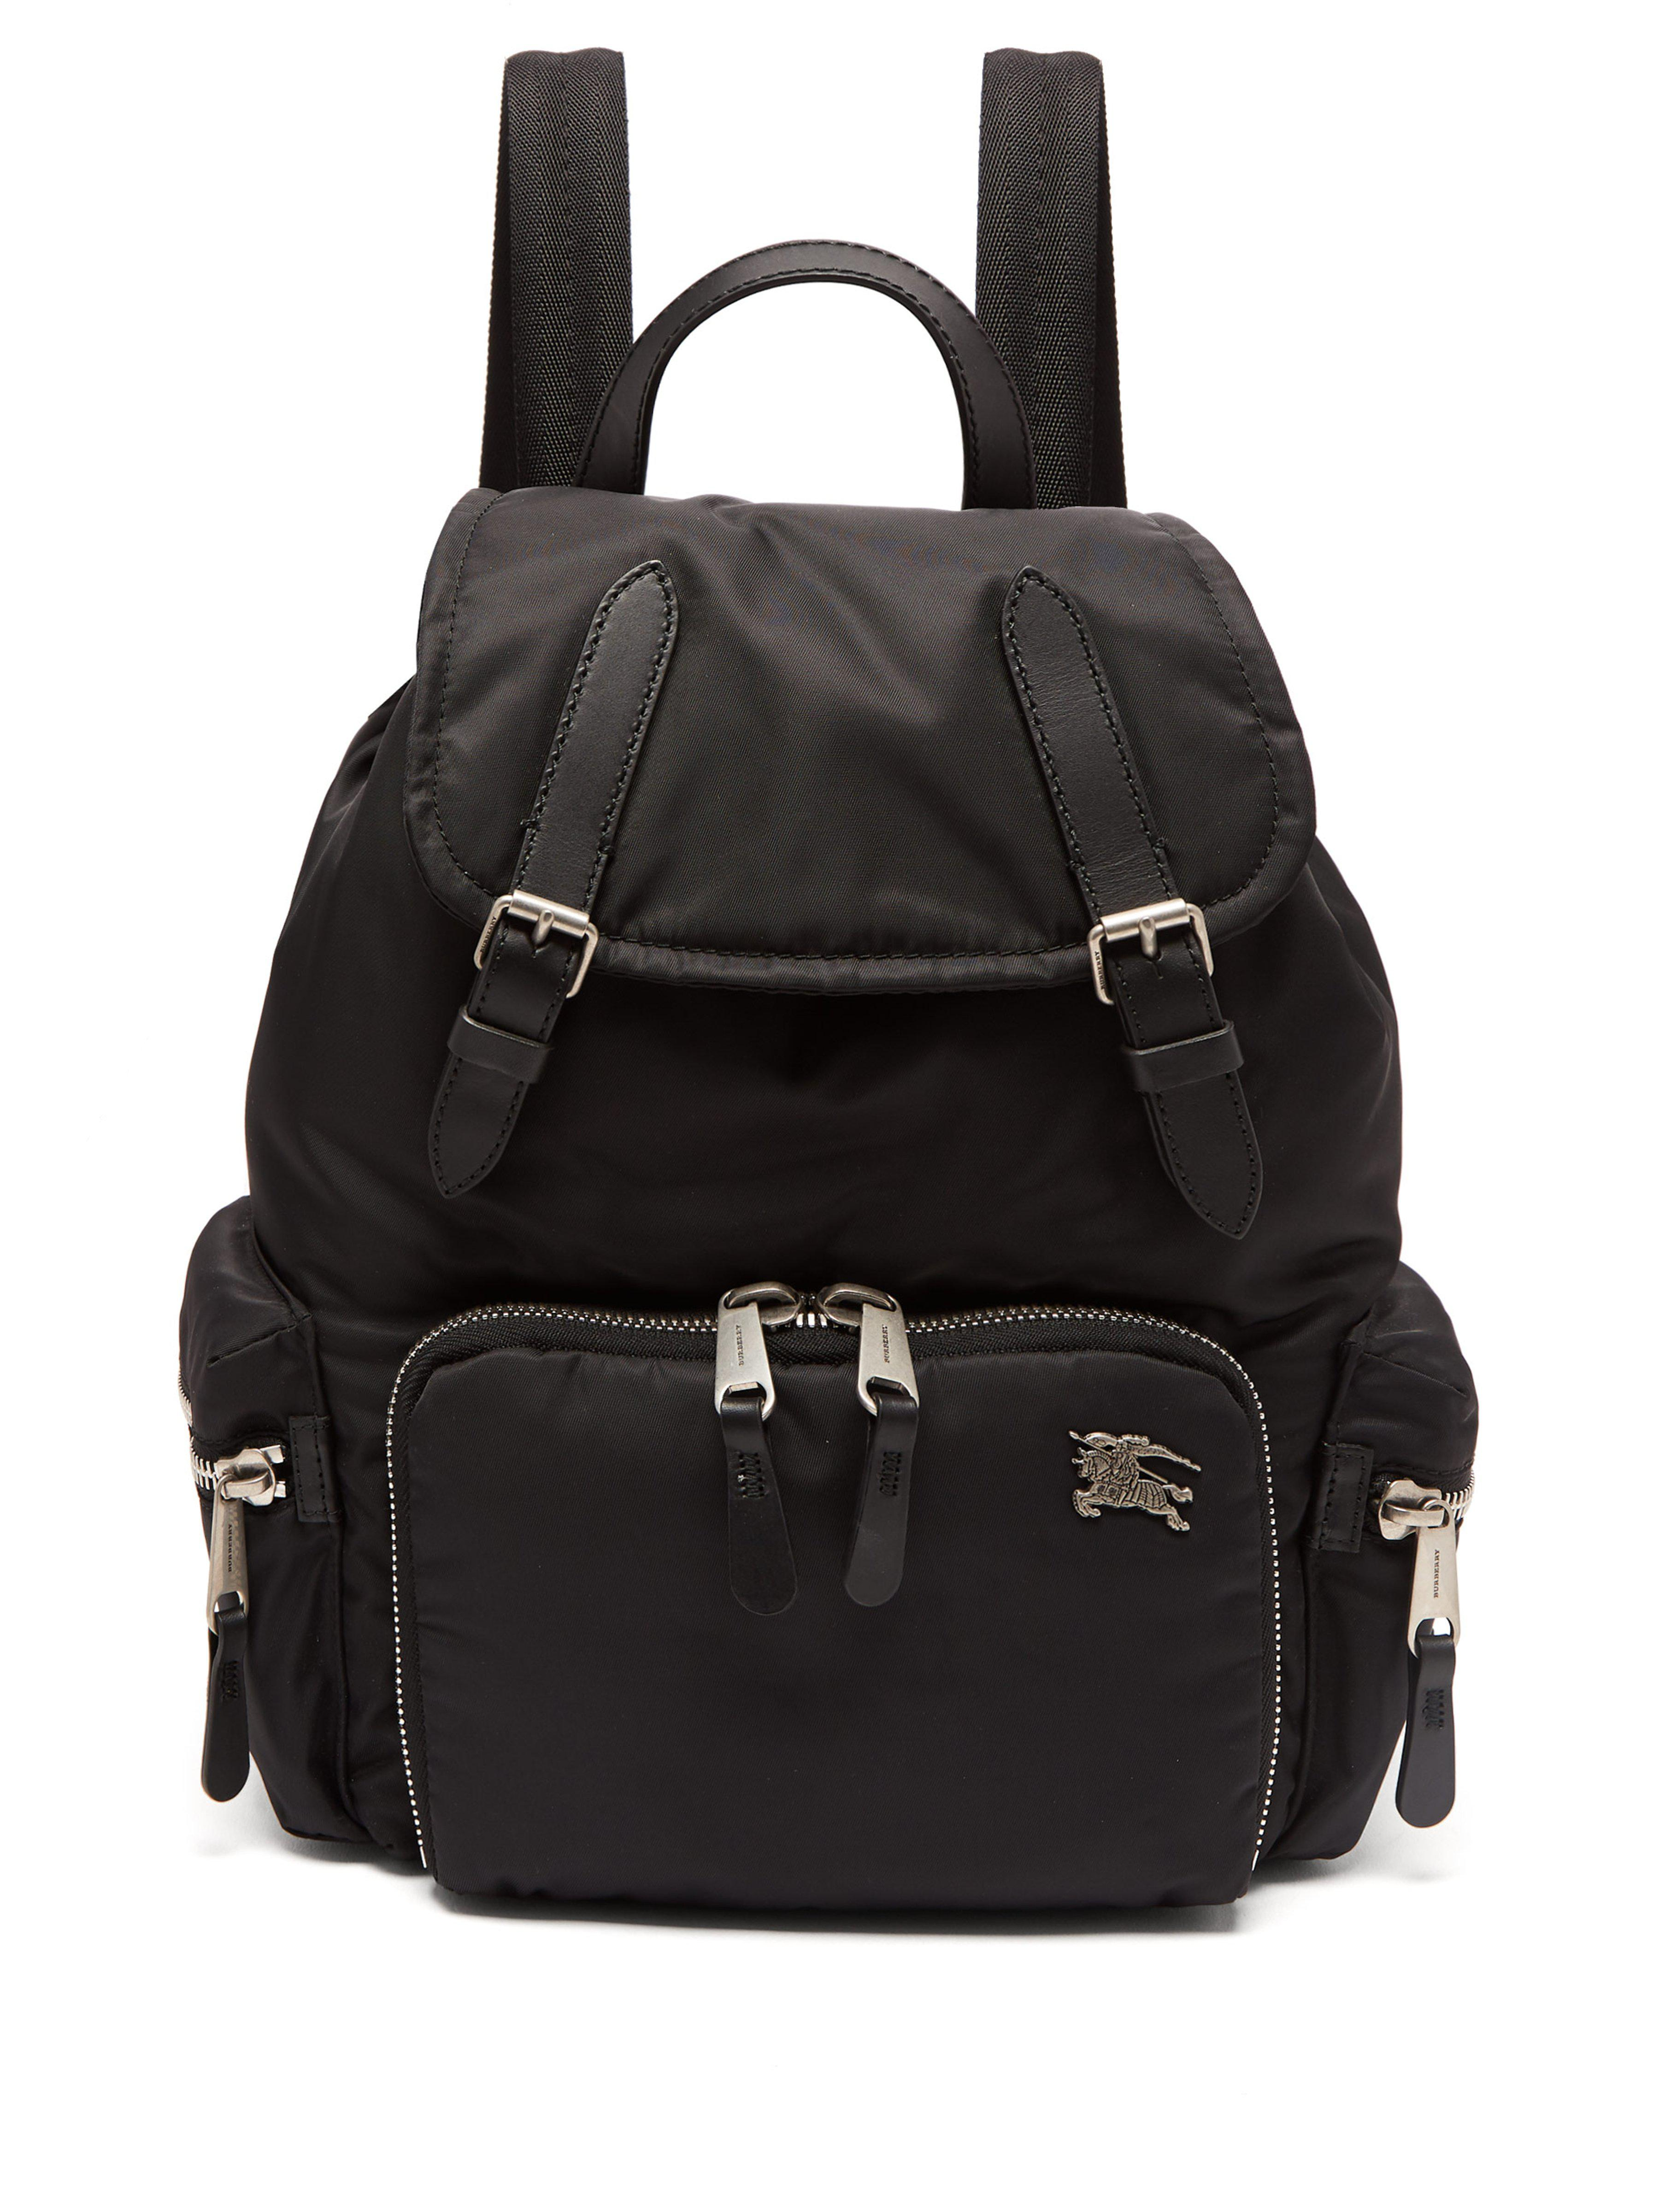 8d569936fa2a Burberry - Black Medium Nylon And Leather Backpack - Lyst. View fullscreen